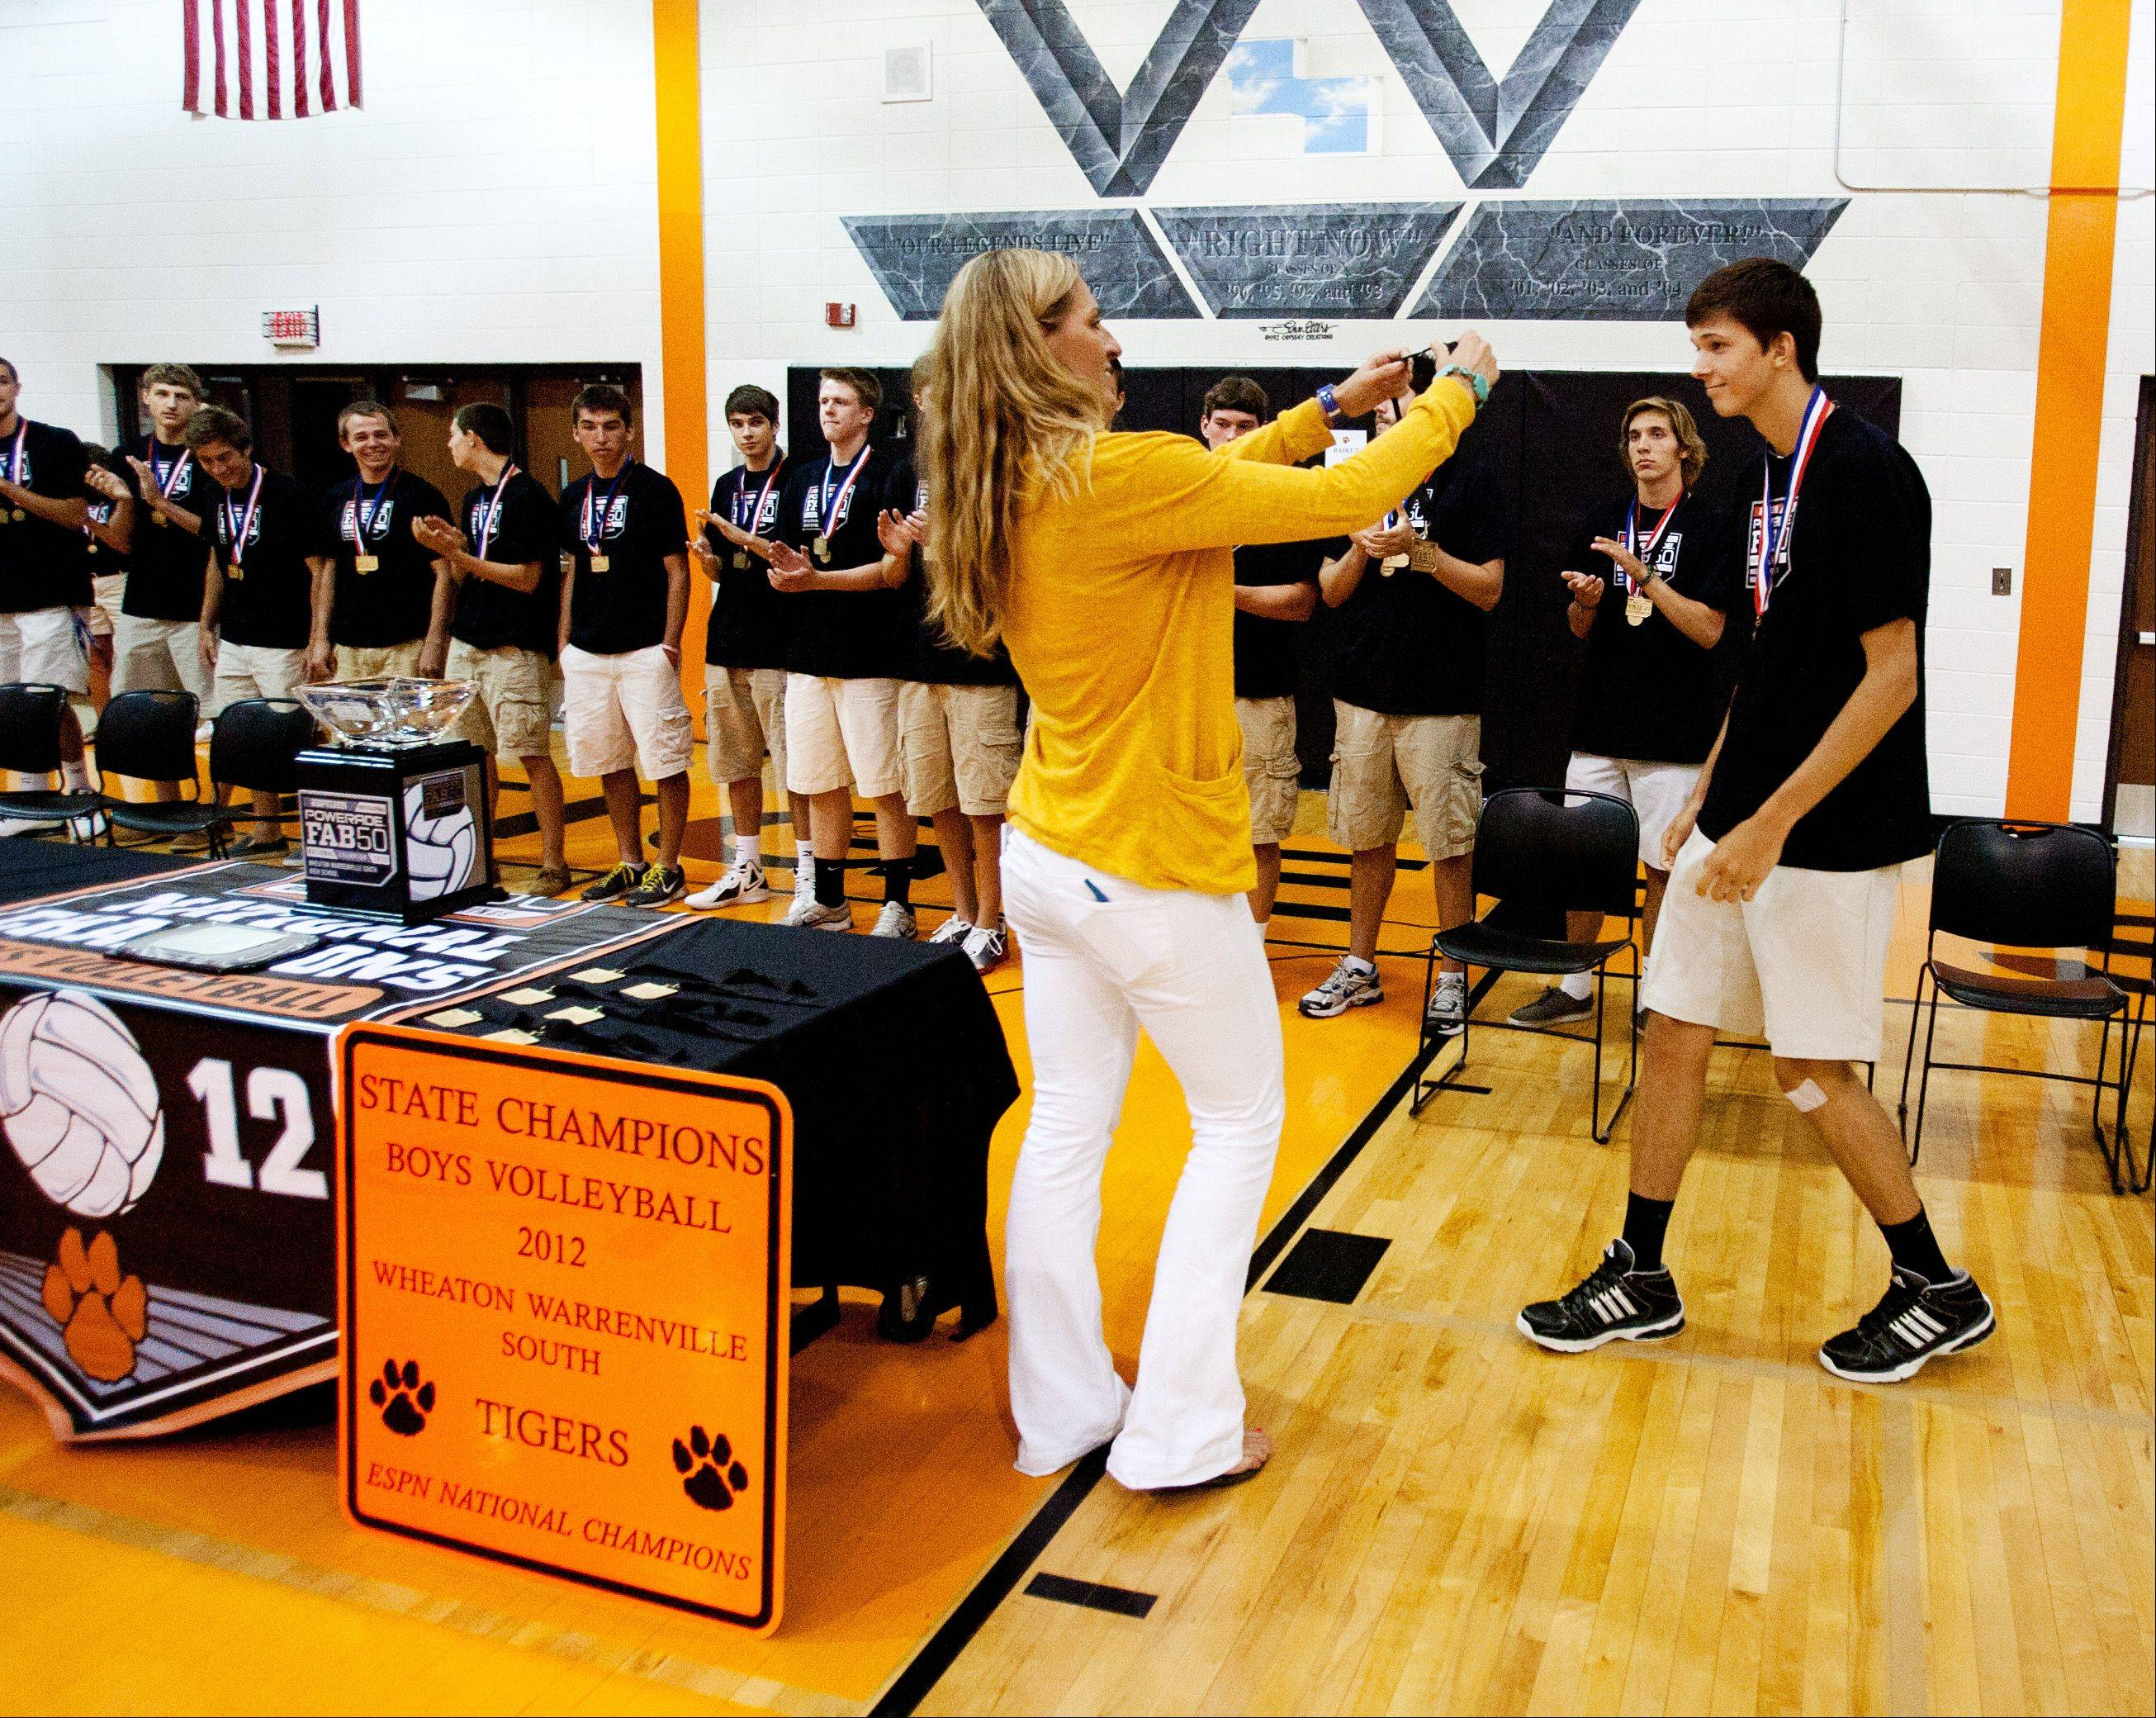 Kirstin Olsen of ESPNHS honors members of the Wheaton Warrenville South boys volleyball team with national championship medals Friday.